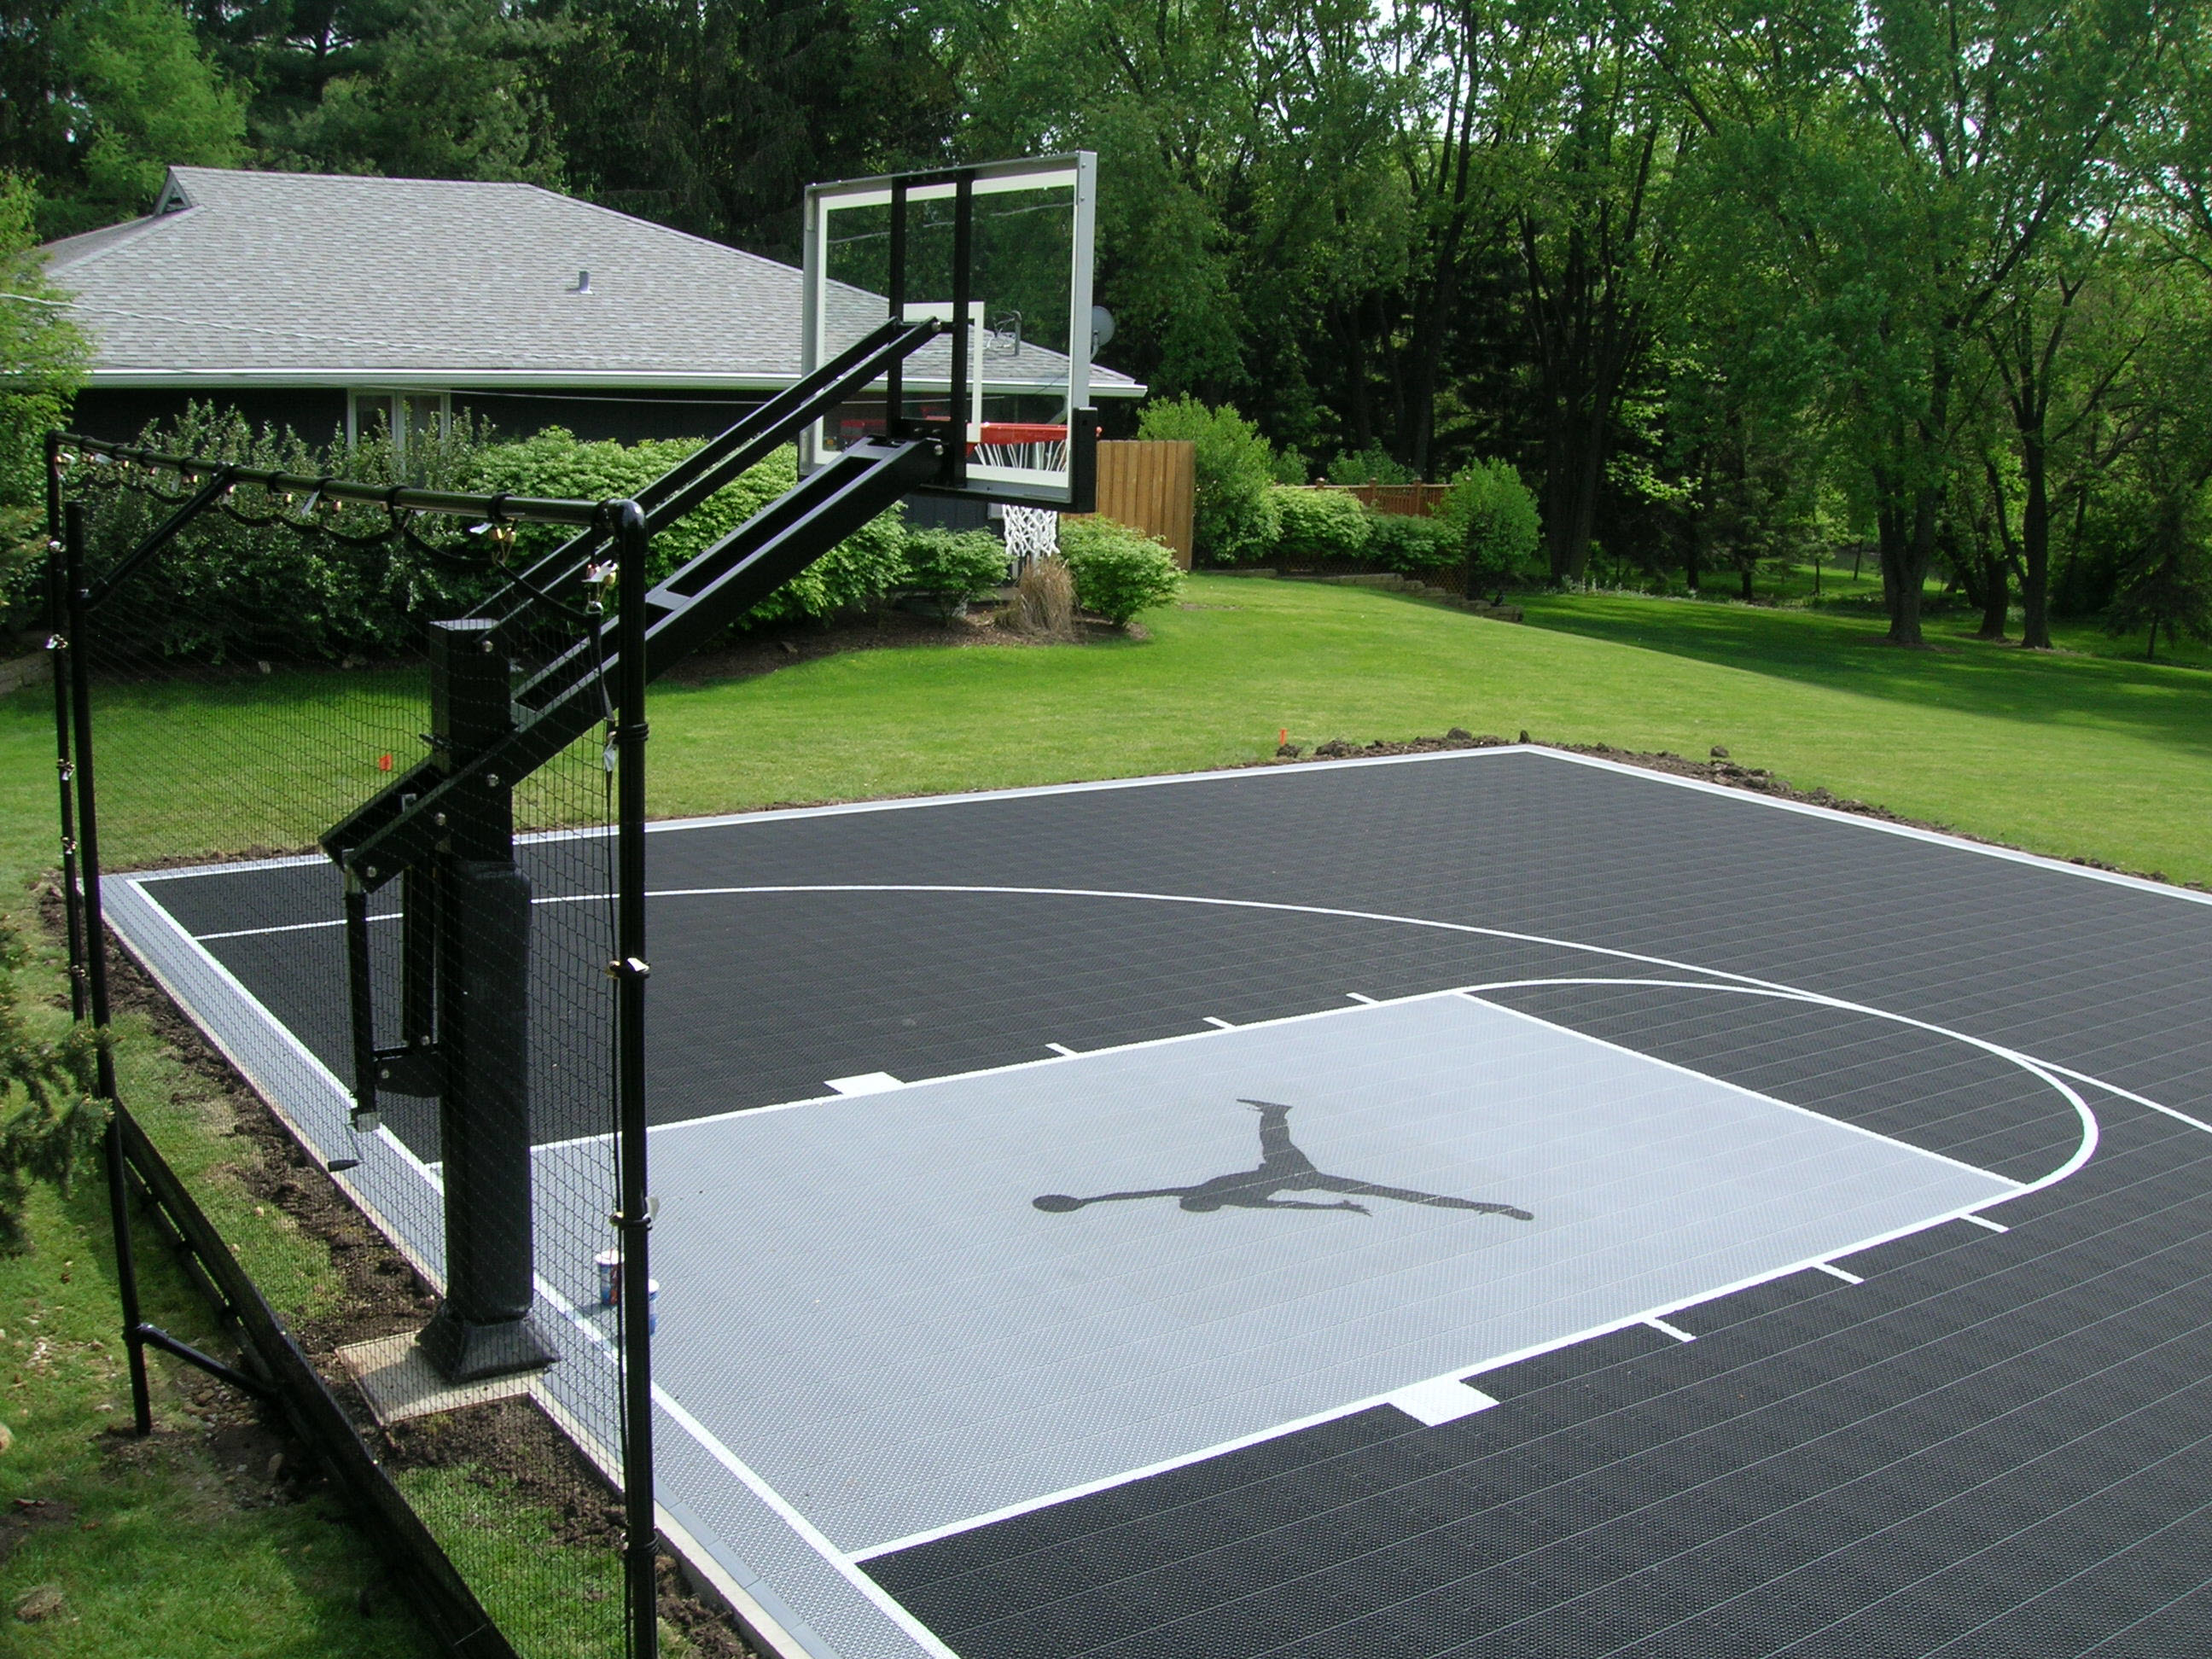 Basketporn top 13 backyard basketball courts basketporn for How to build basketball court